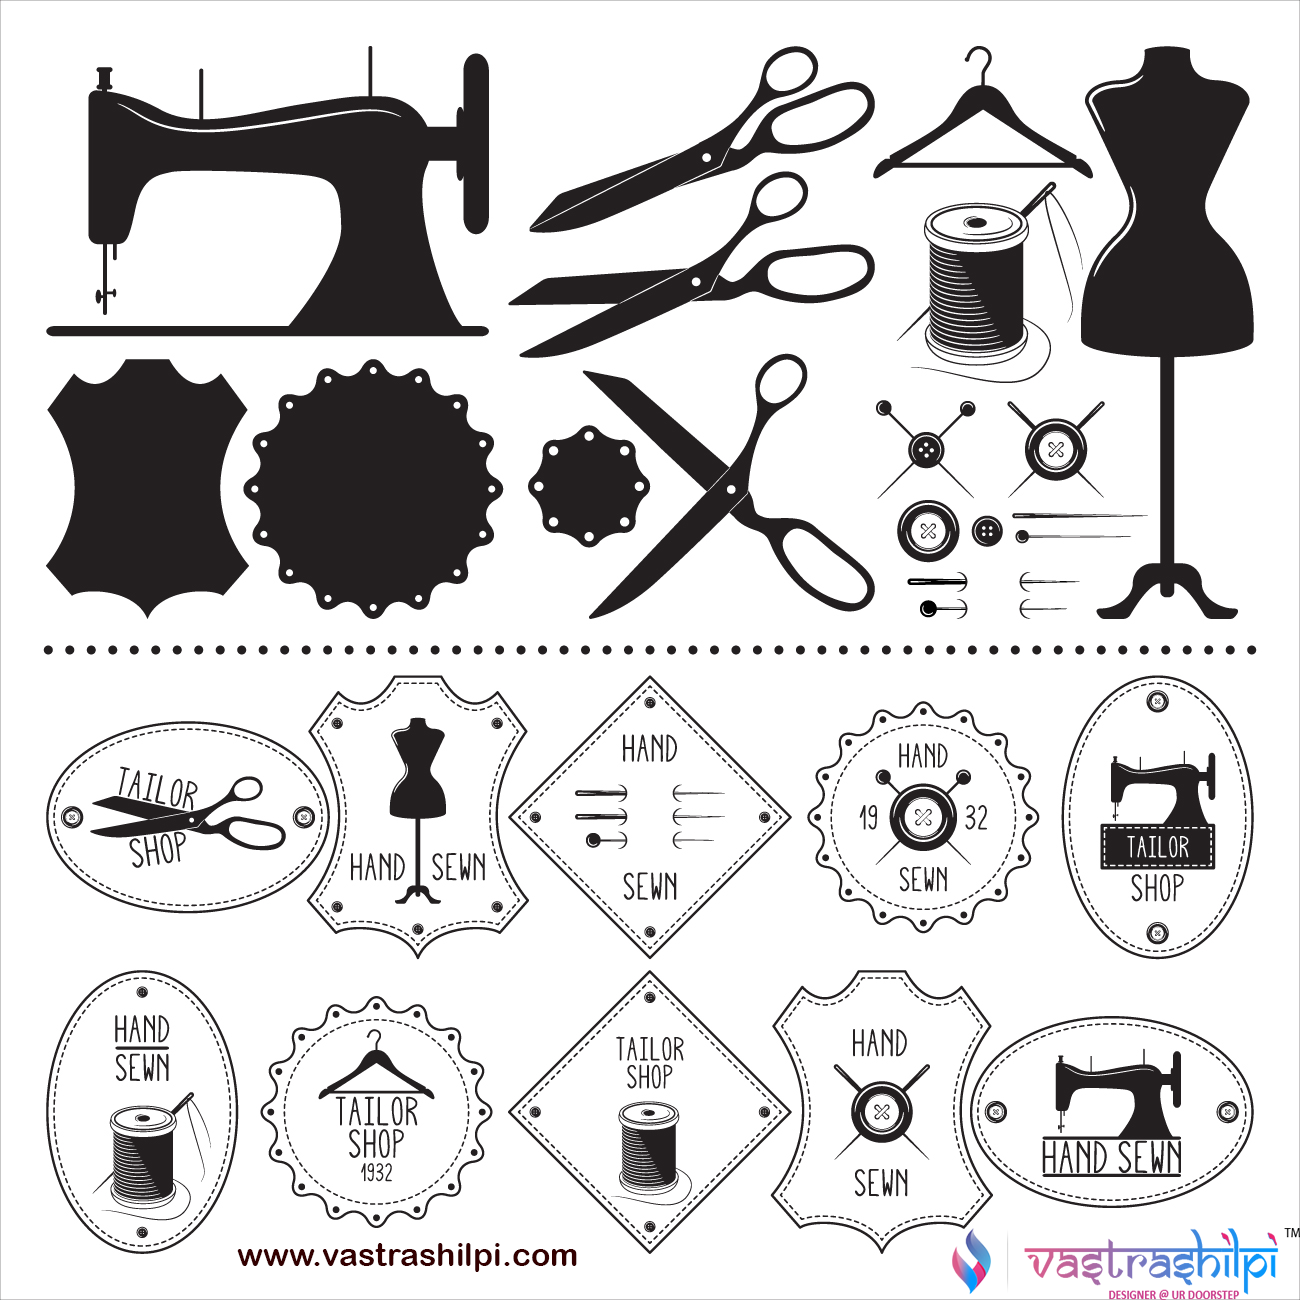 online tailoring services in india at your doorstep at vastrashilpi  everything need to know